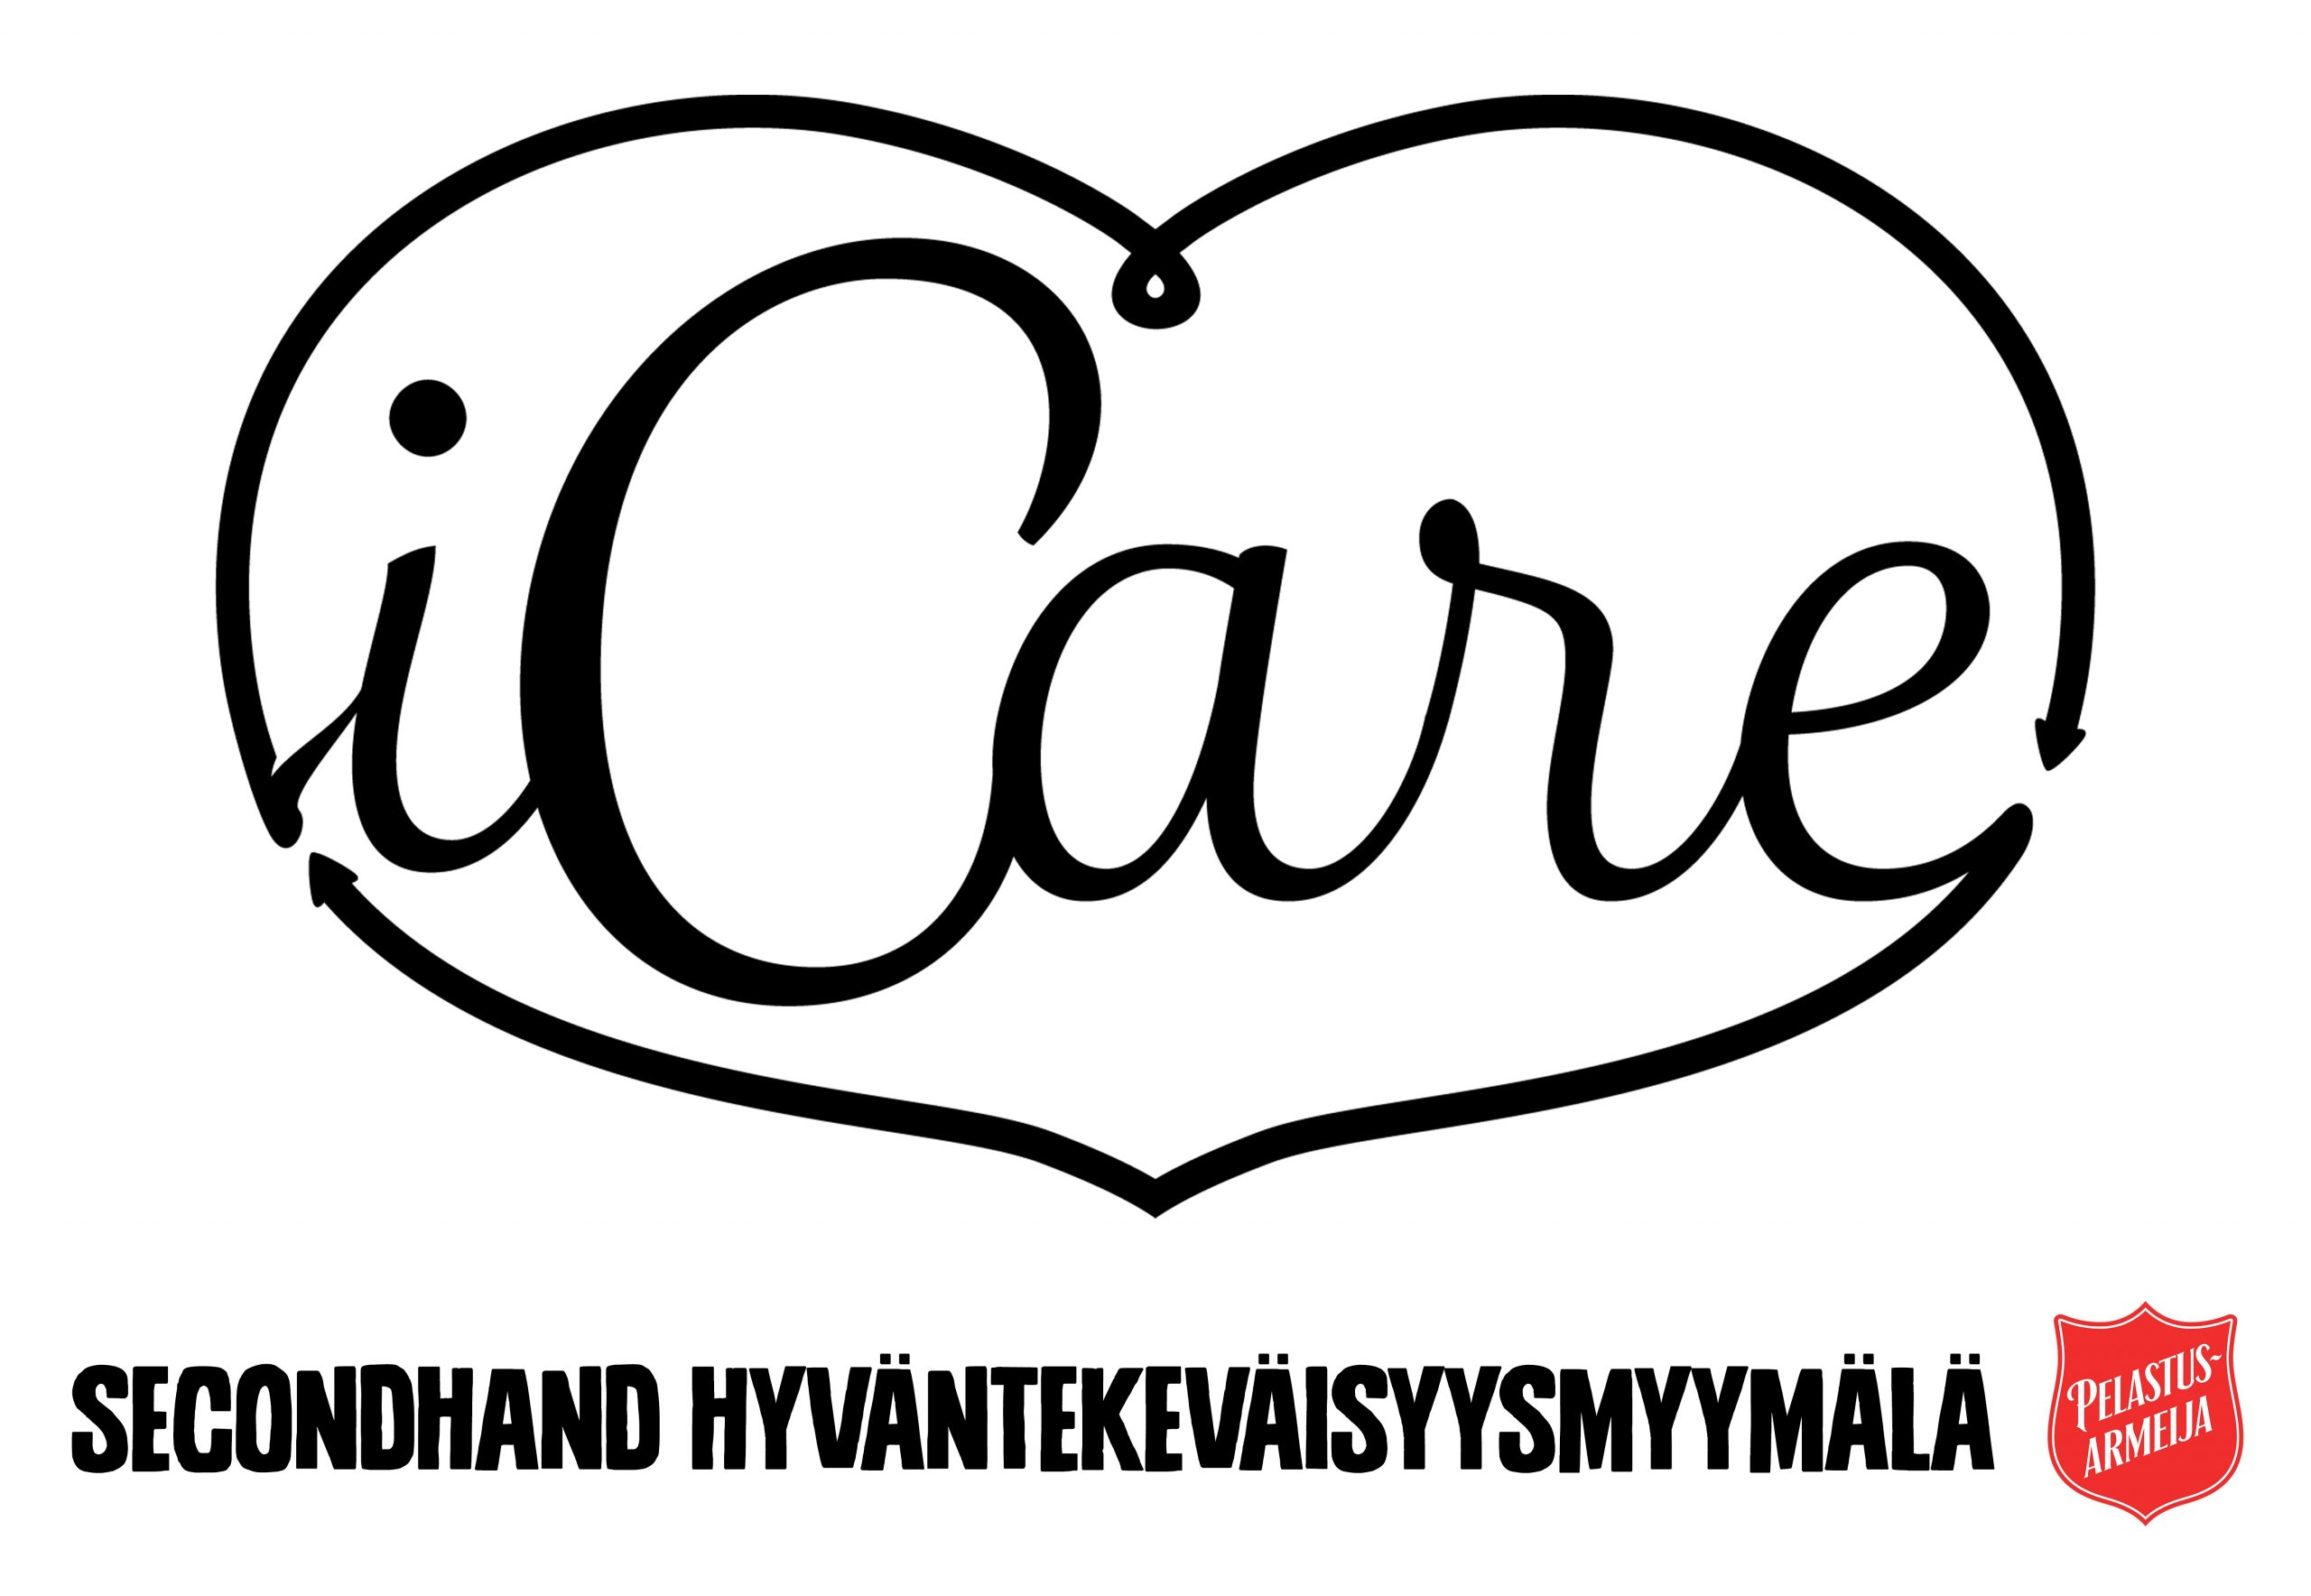 iCare Second Hand